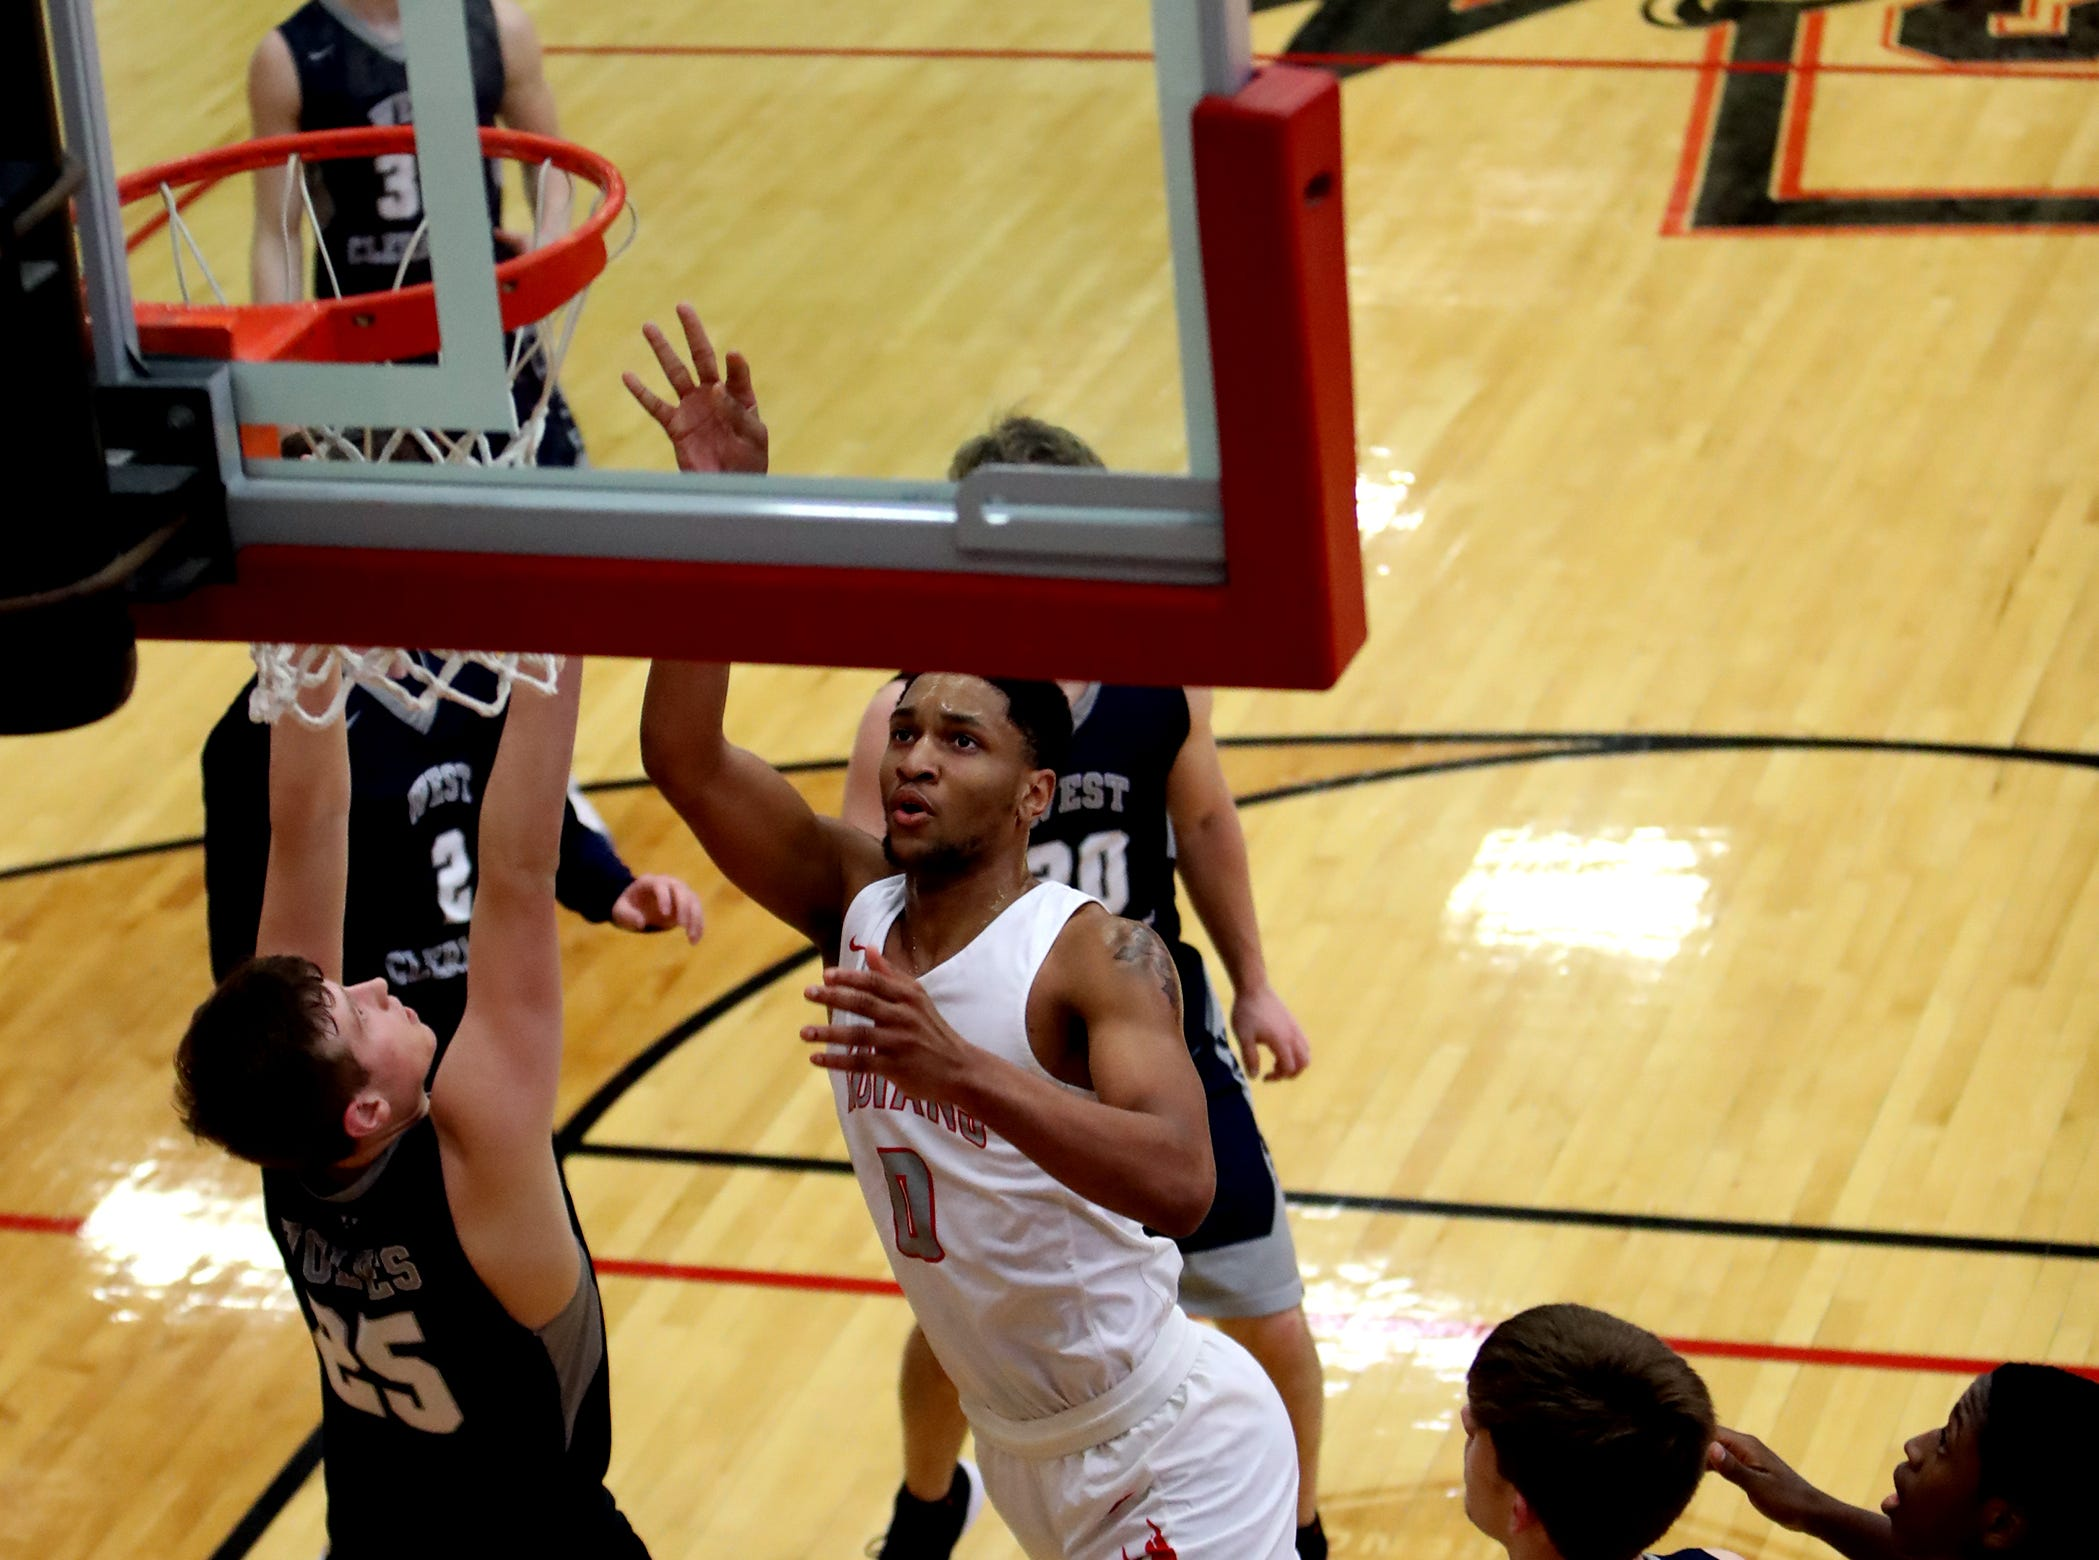 Fairfield guard Devin Turner scores from the paint. Turner led the Indians with 19 points.